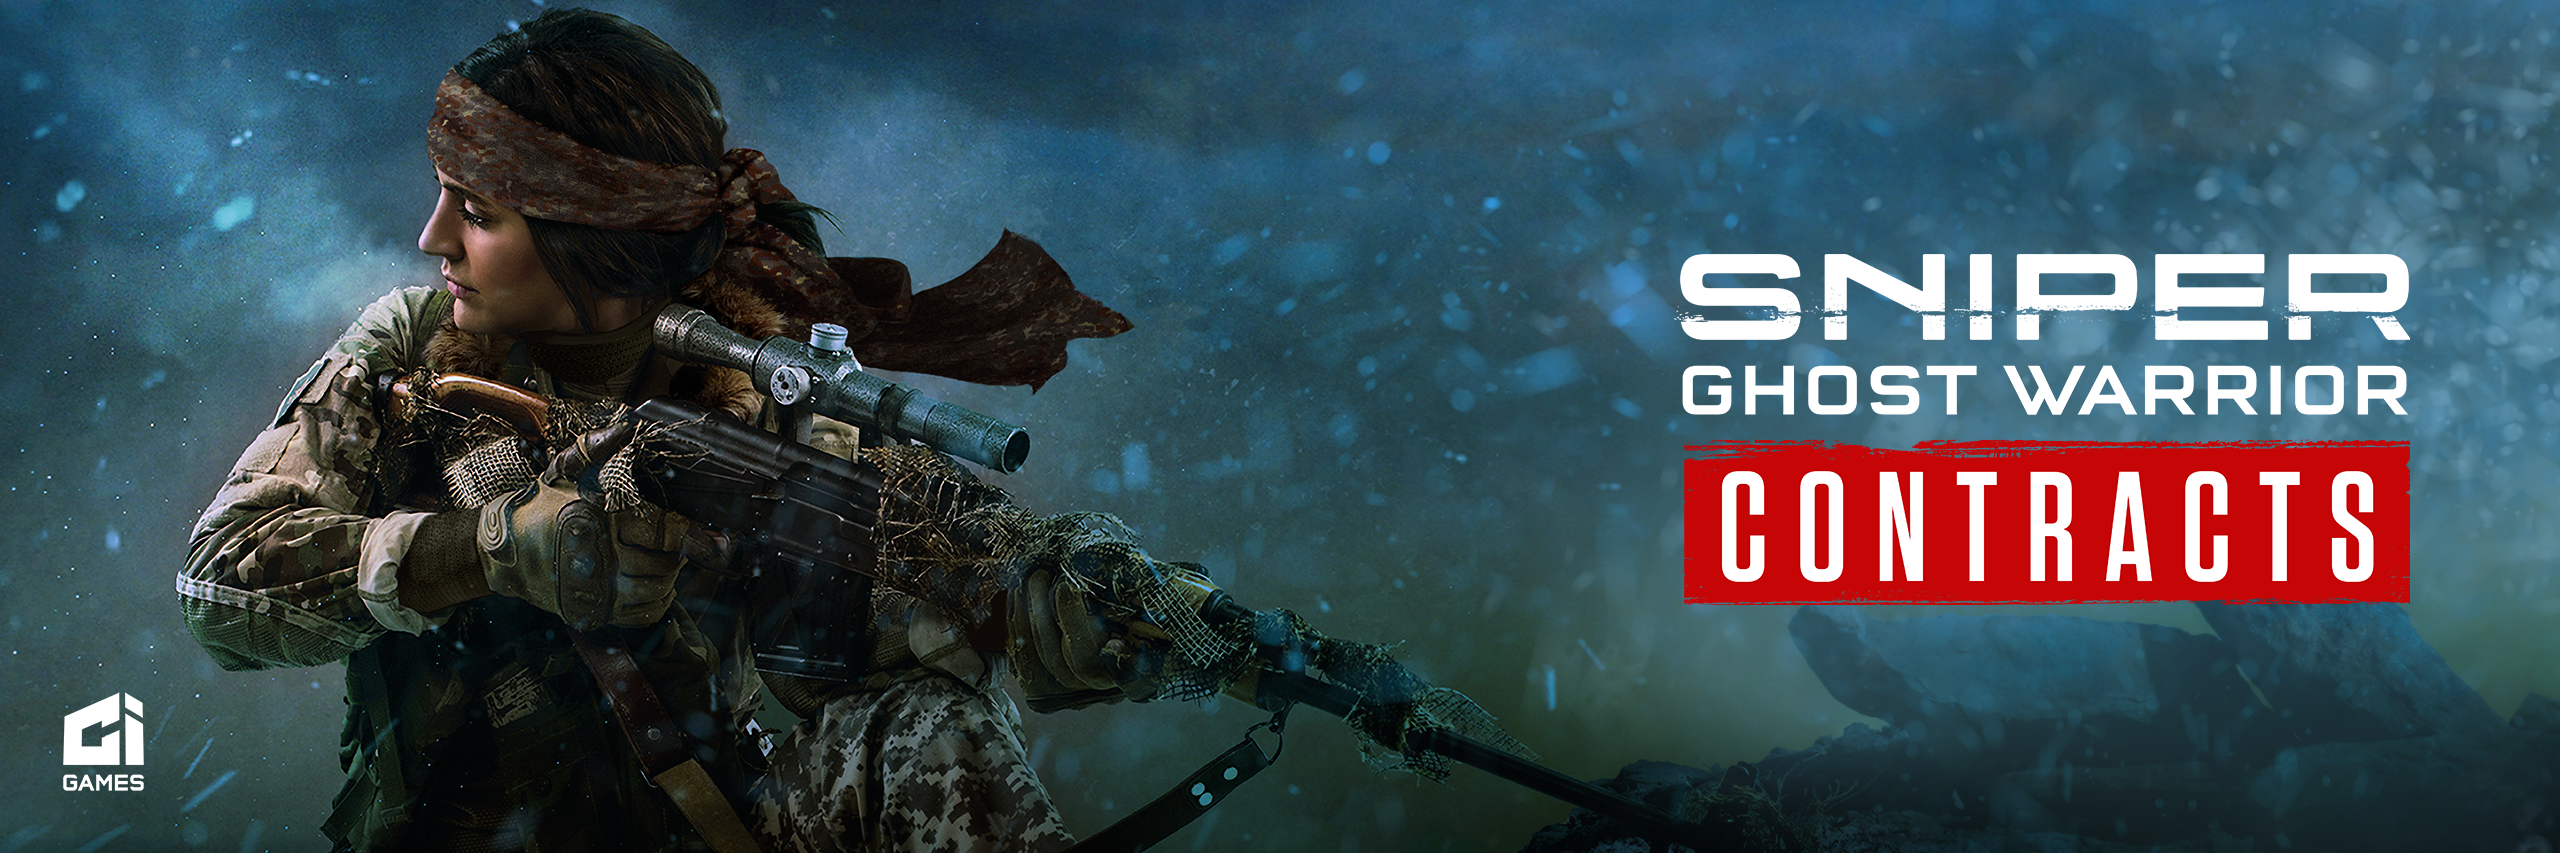 Sniper Ghost Warrior Contracts by CI Games